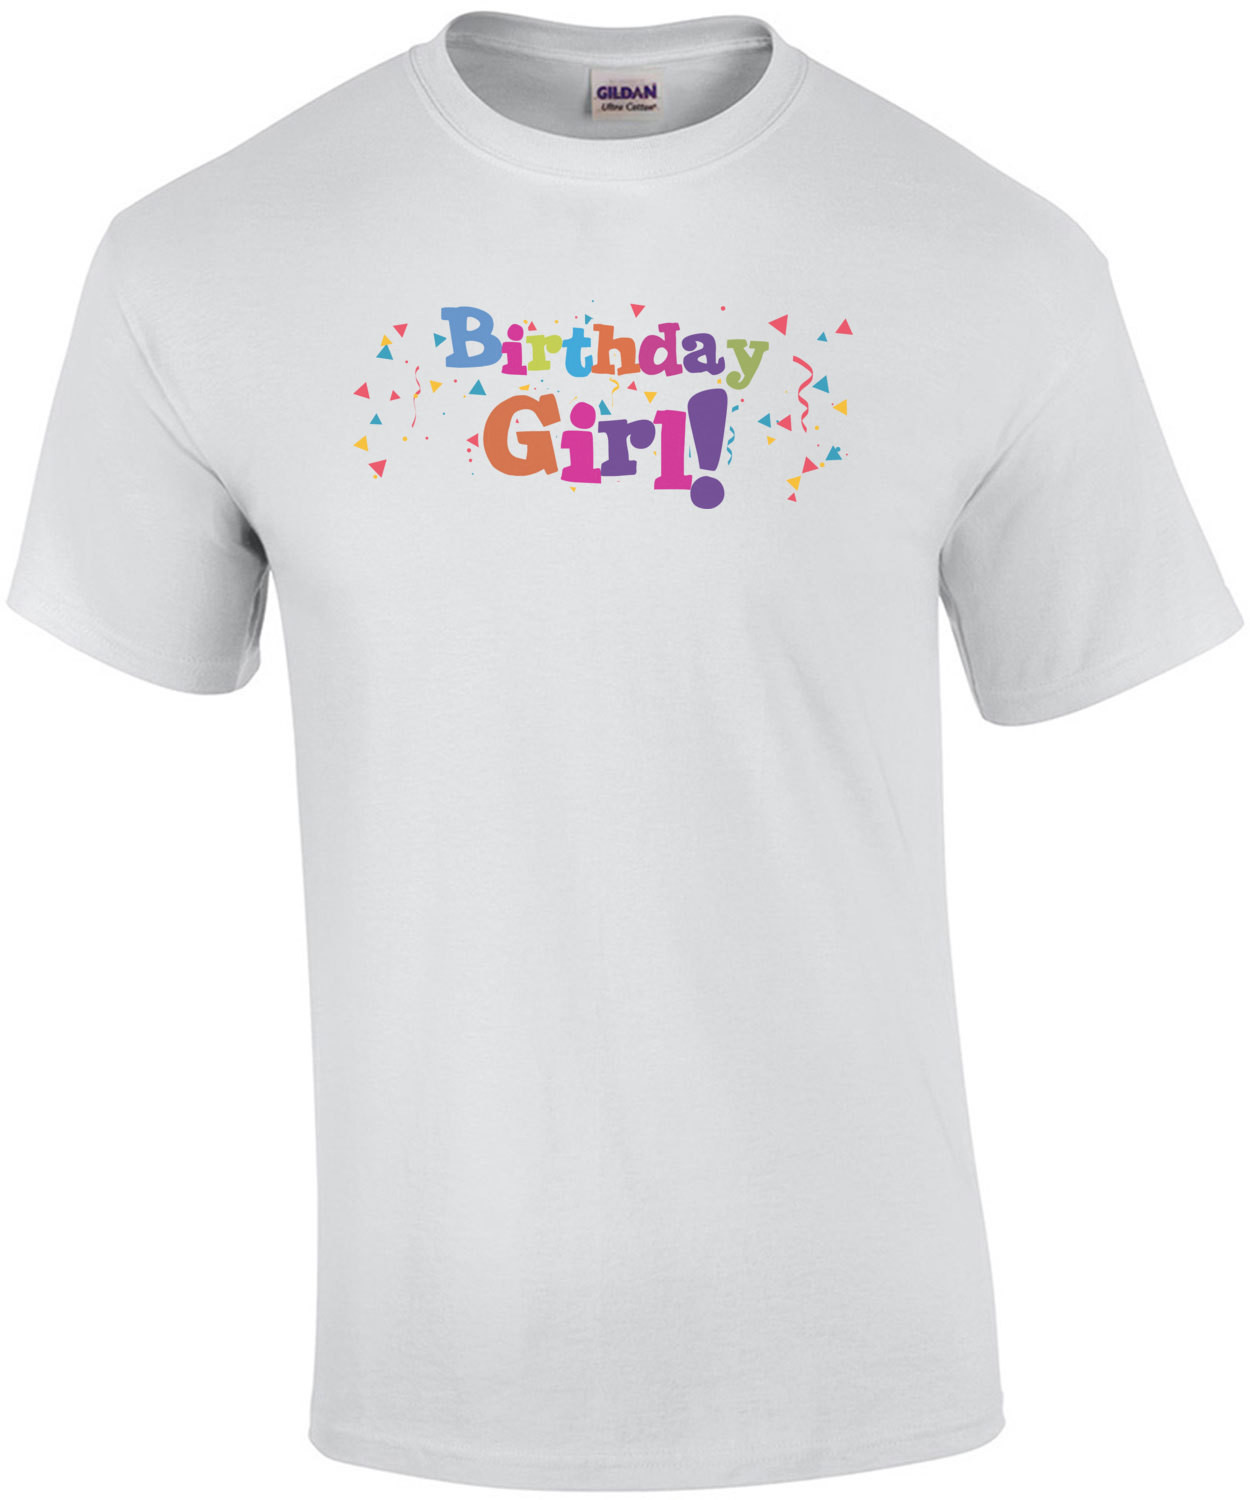 Birthday Girl - Happy Birthday Shirt